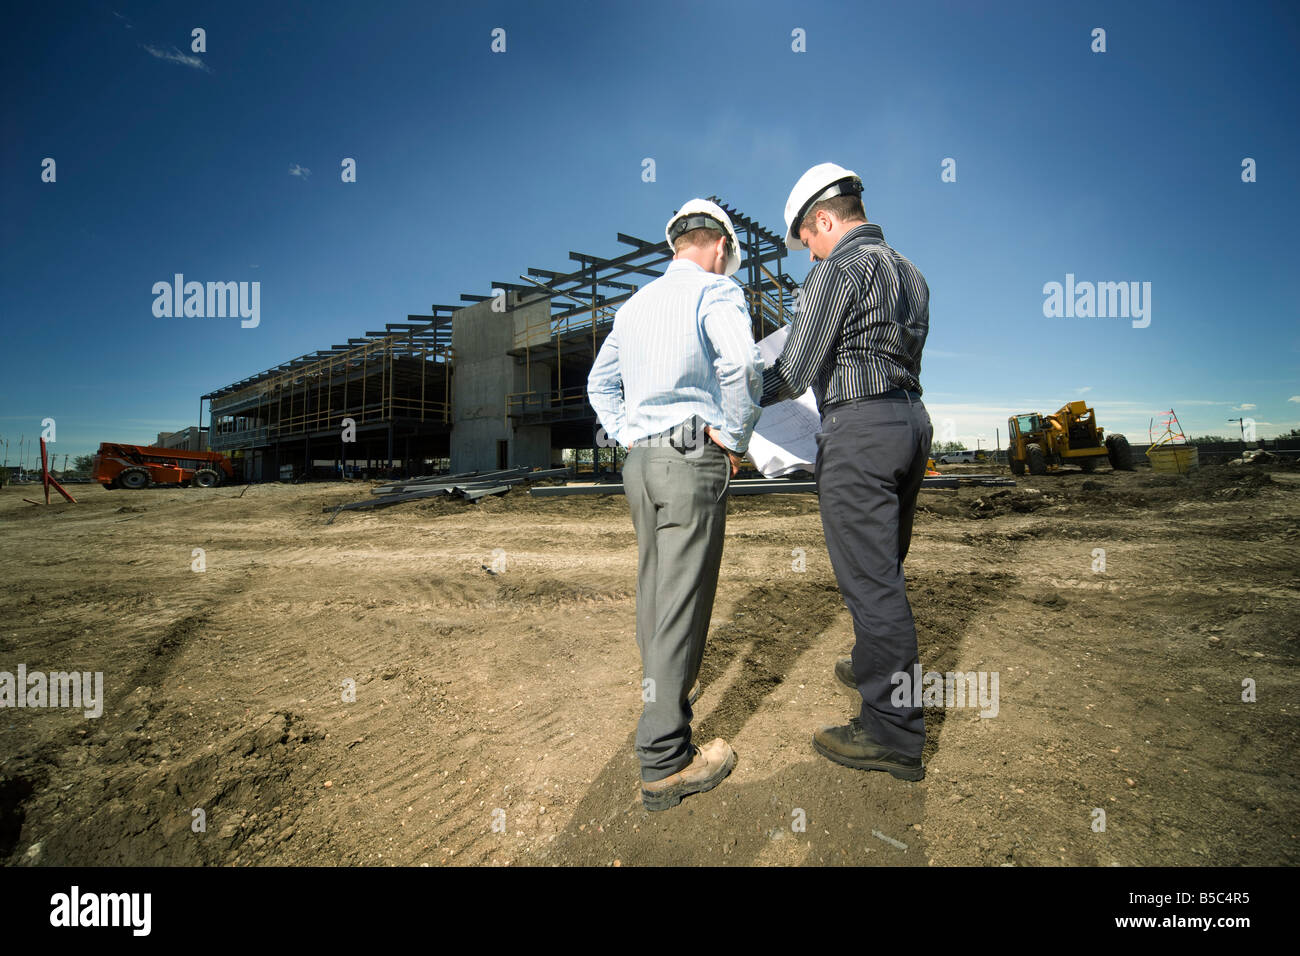 Two men reviewing blueprints in front of building - Stock Image